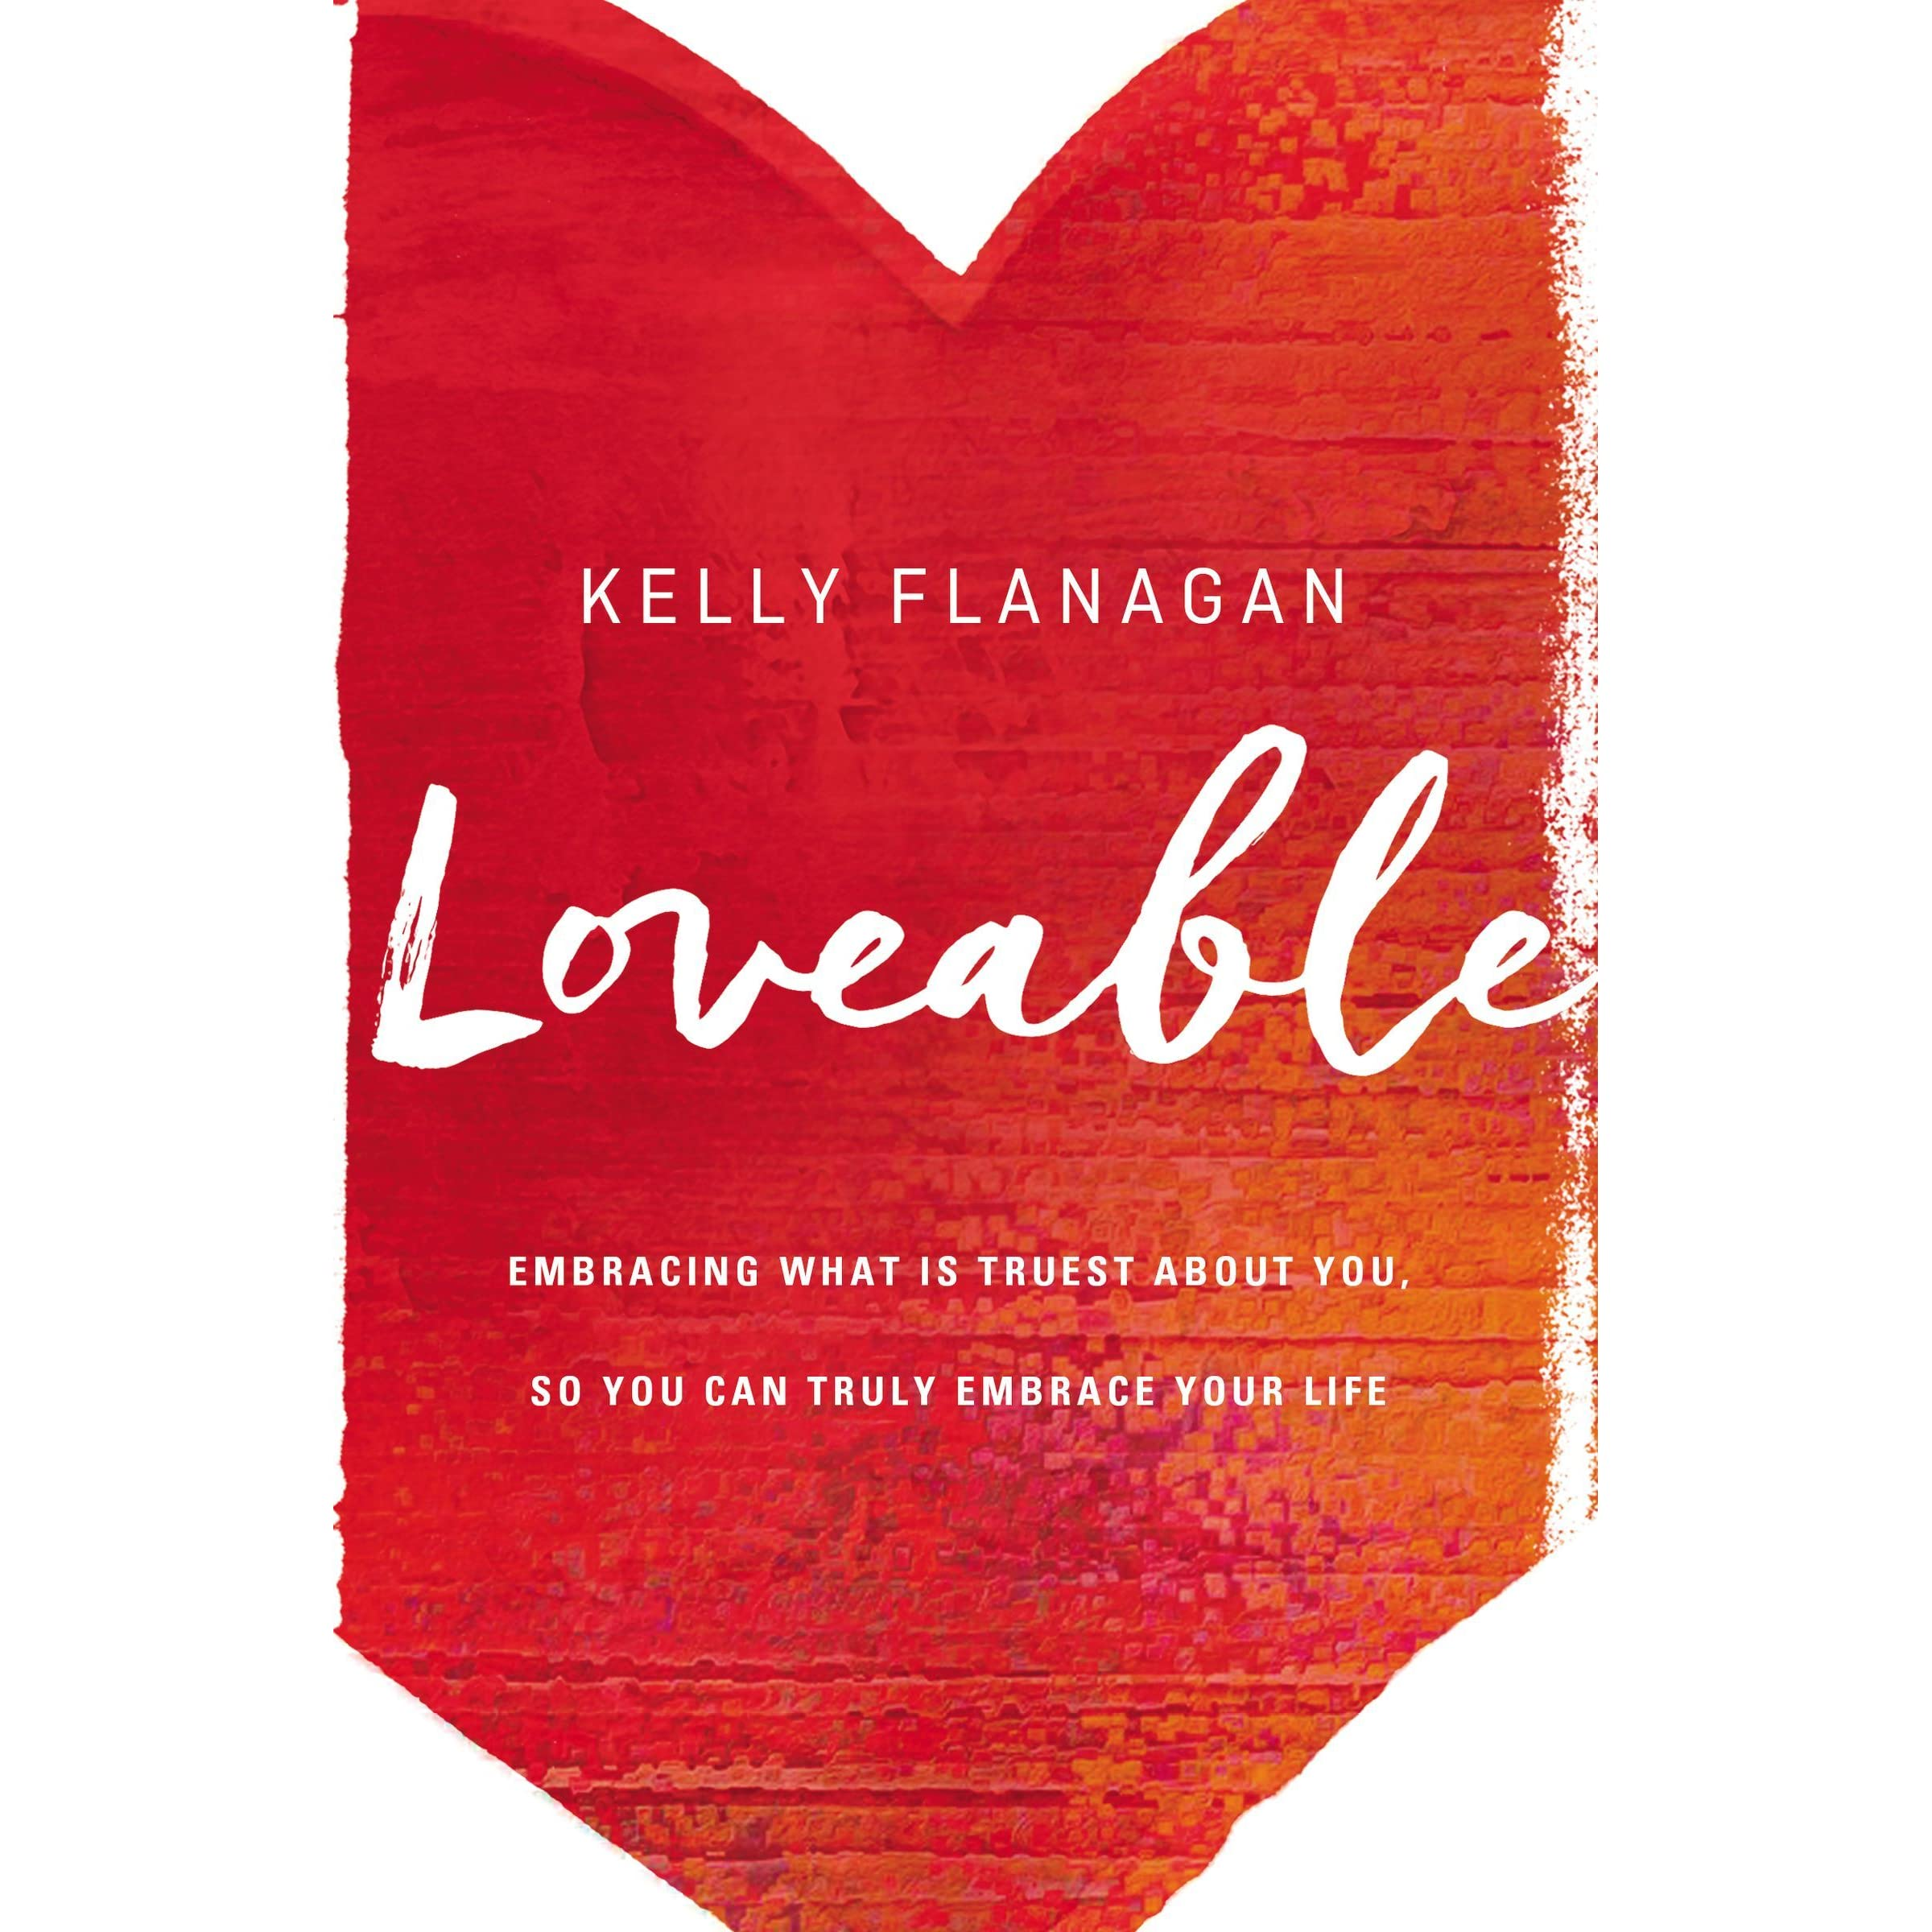 Loveable: Embracing What Is Truest About You, So You Can Truly ...